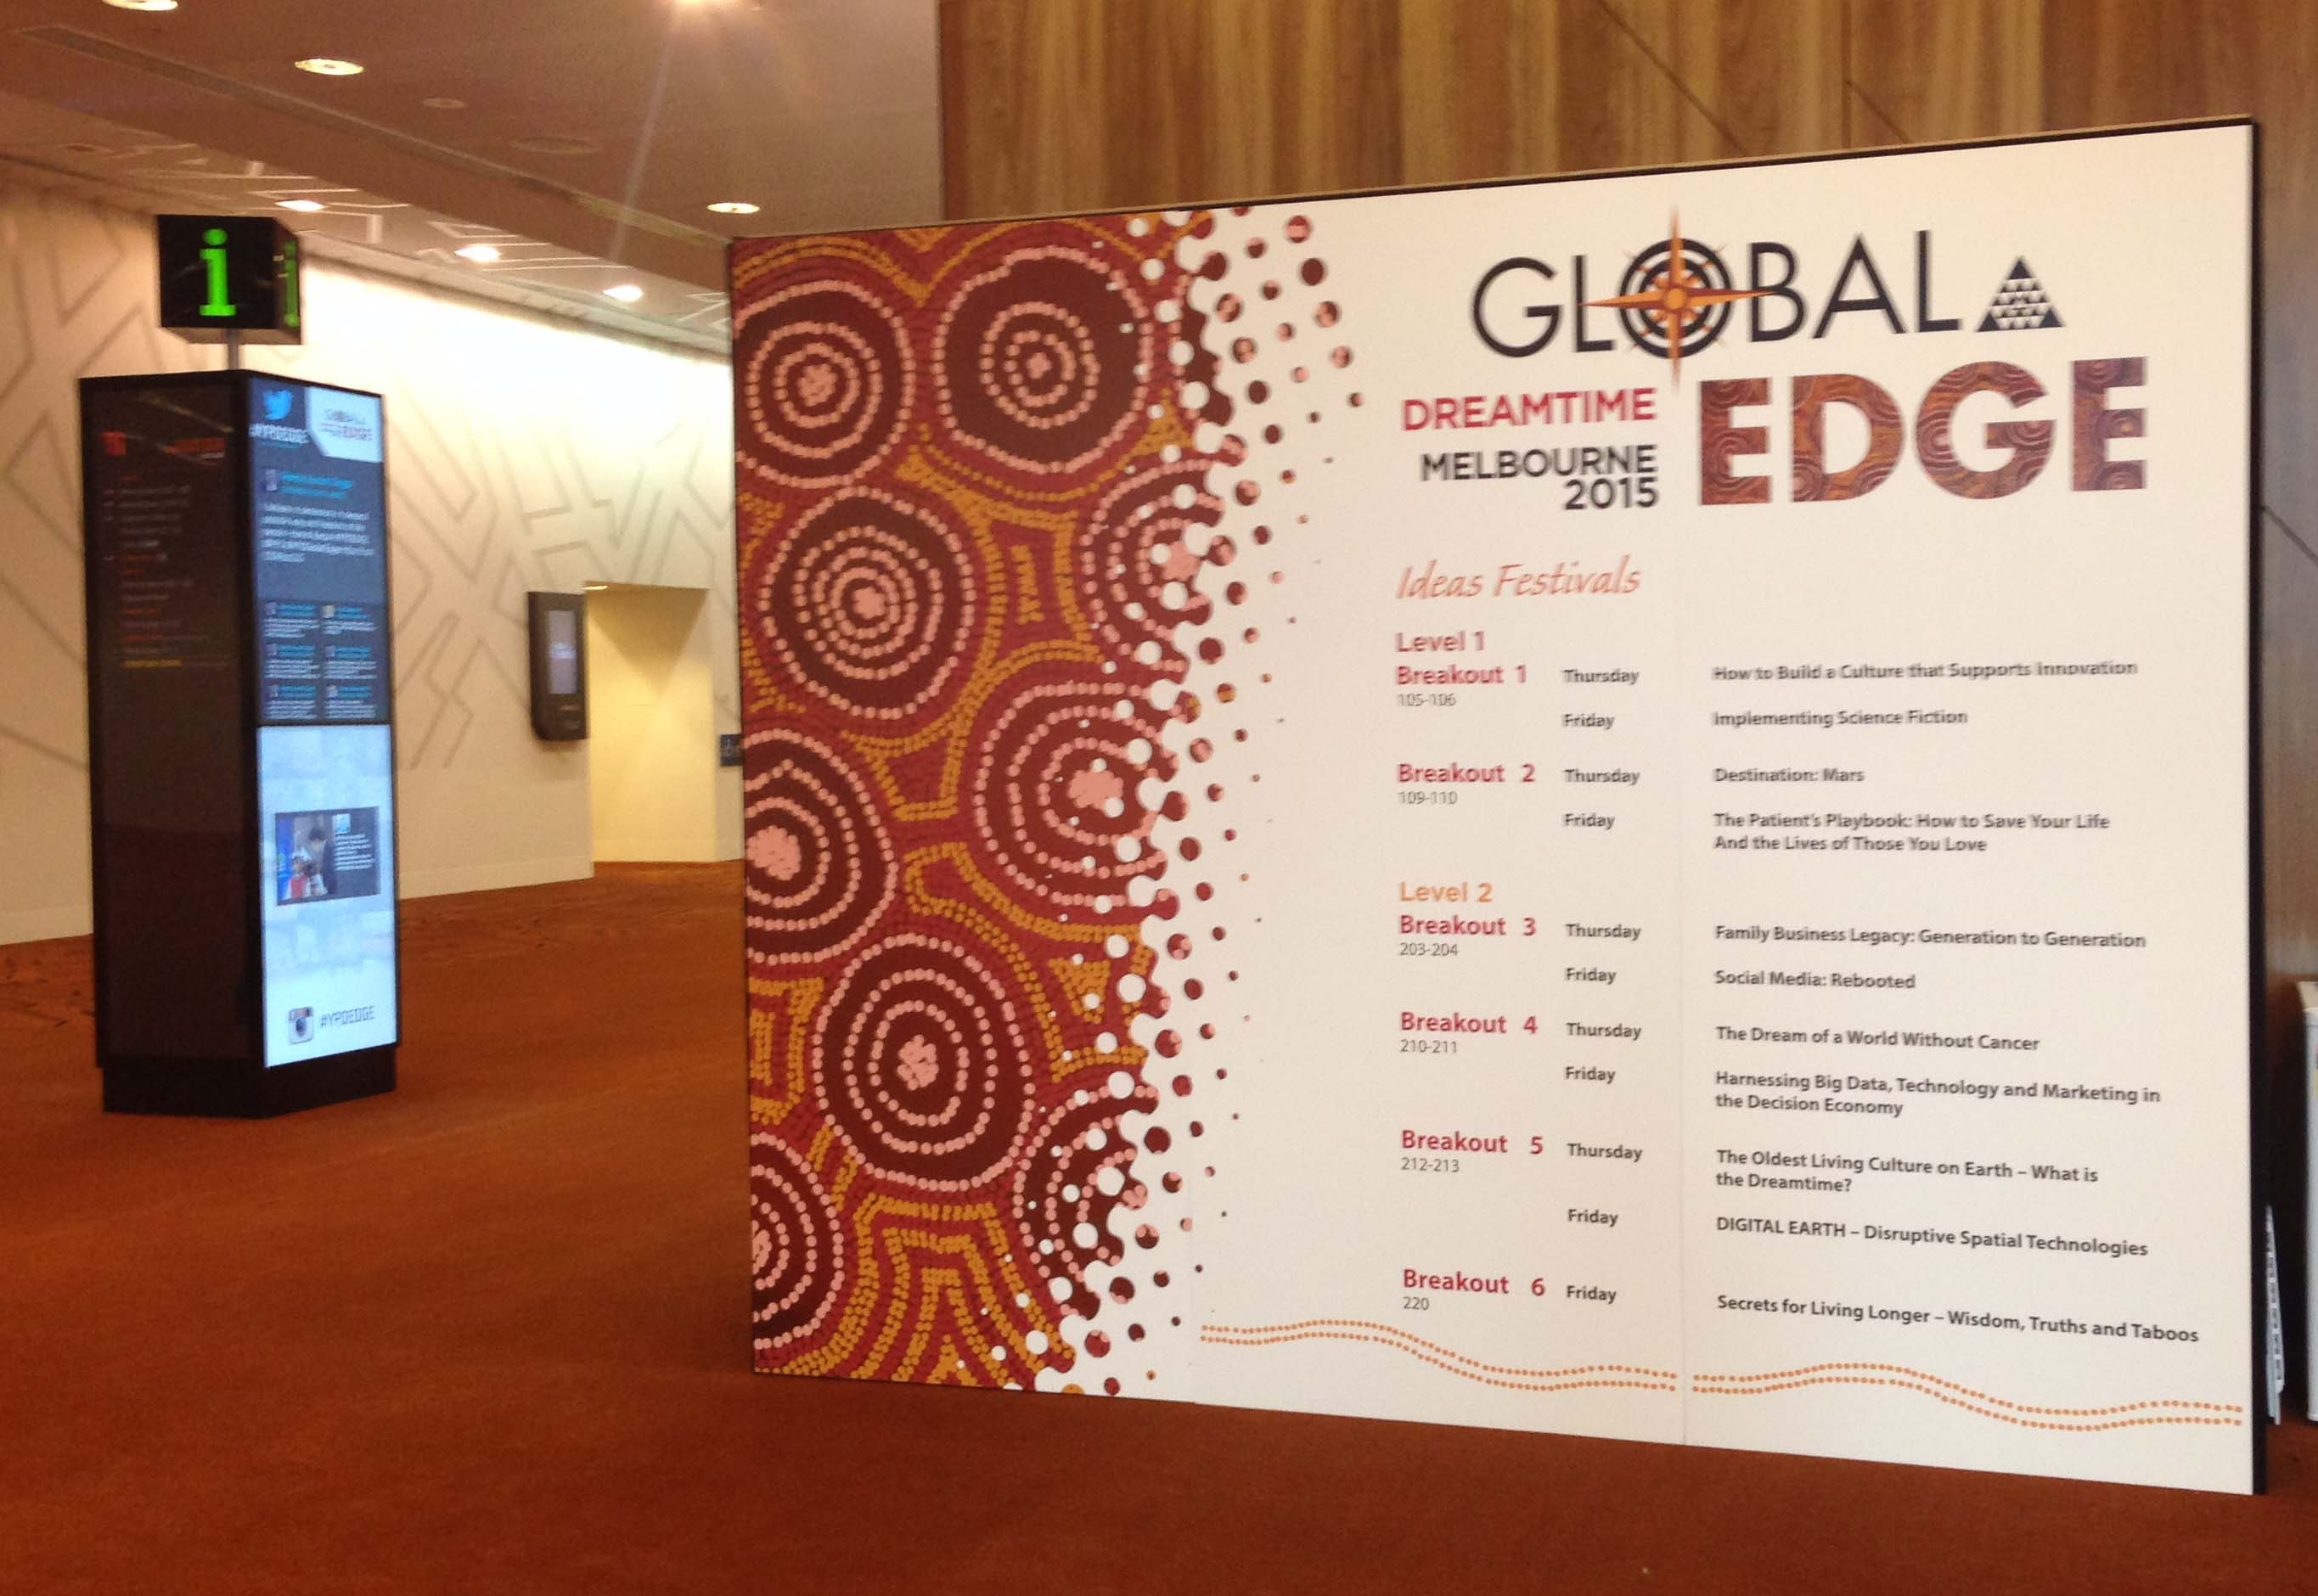 MELBOURNE 2015 GLC & GLOBAL EDGE